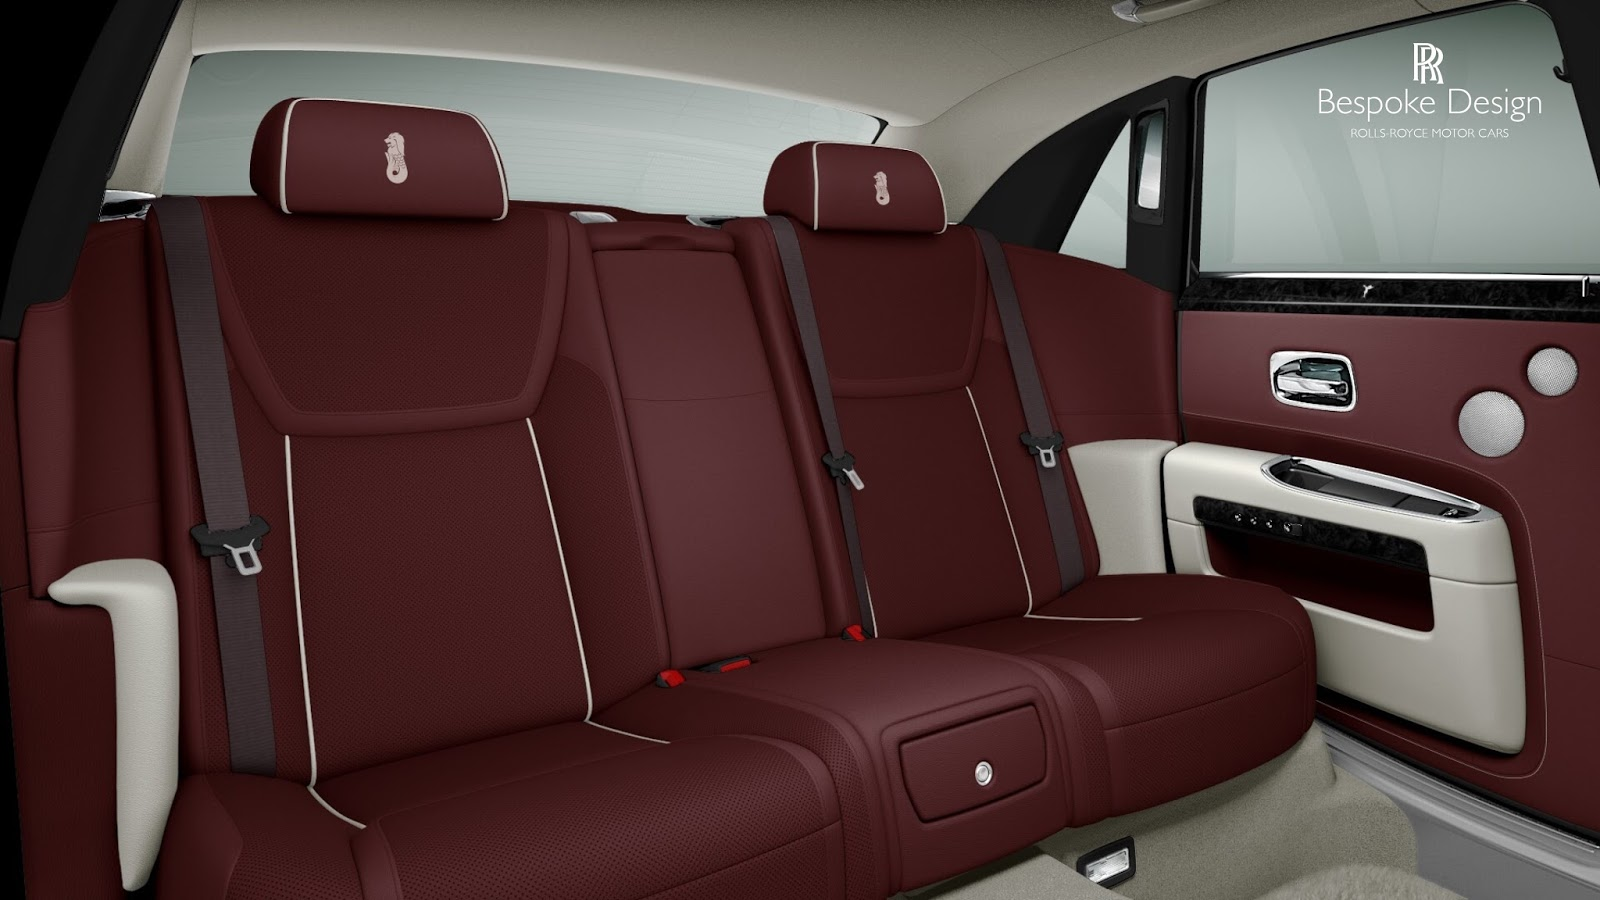 The interior features dark red leather seats that have Singapore's iconic Merlion stitched into each headrest.